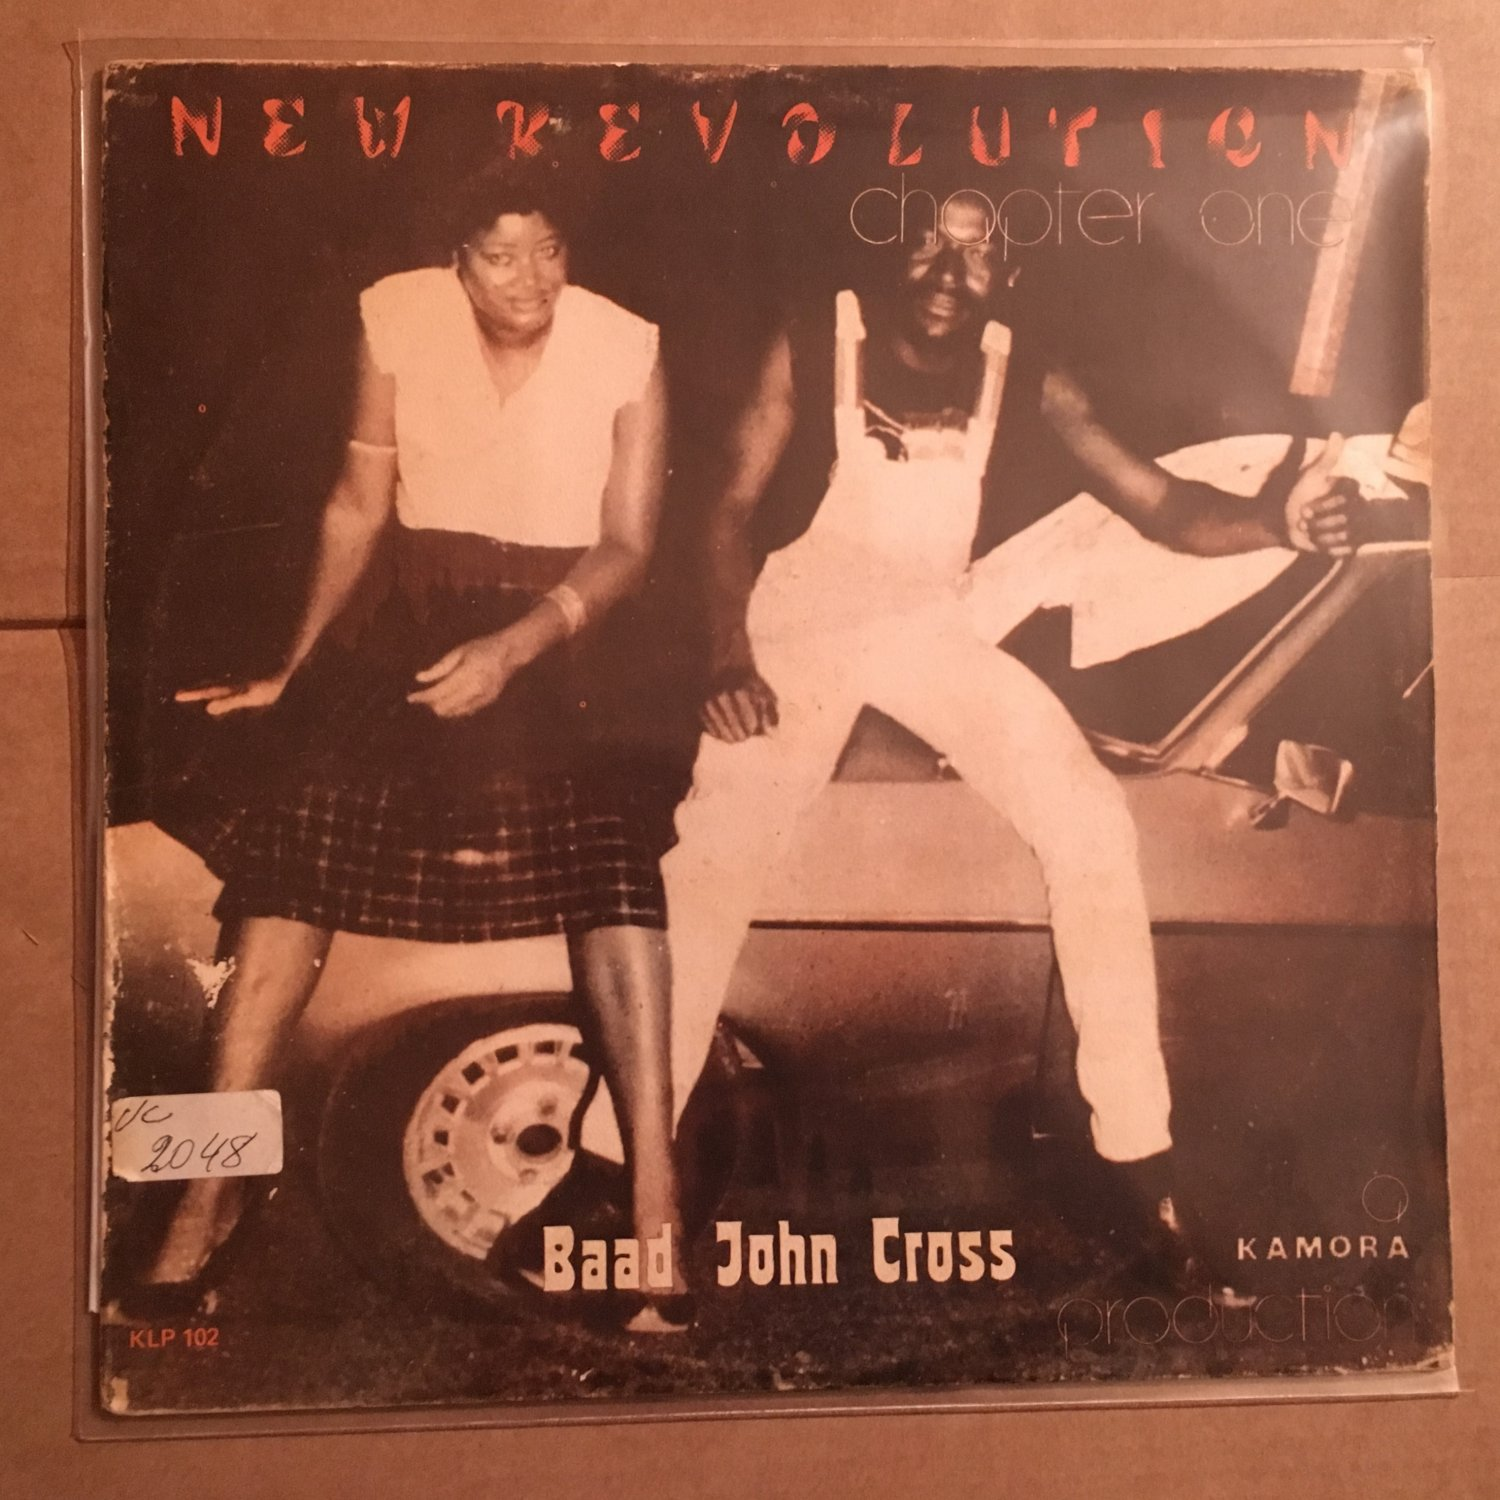 BAAD JOHN CROSS LP new revolution new chapter NIGERIA BOOGIE SYNTH ELECTRO FUNK mp3 LISTEN